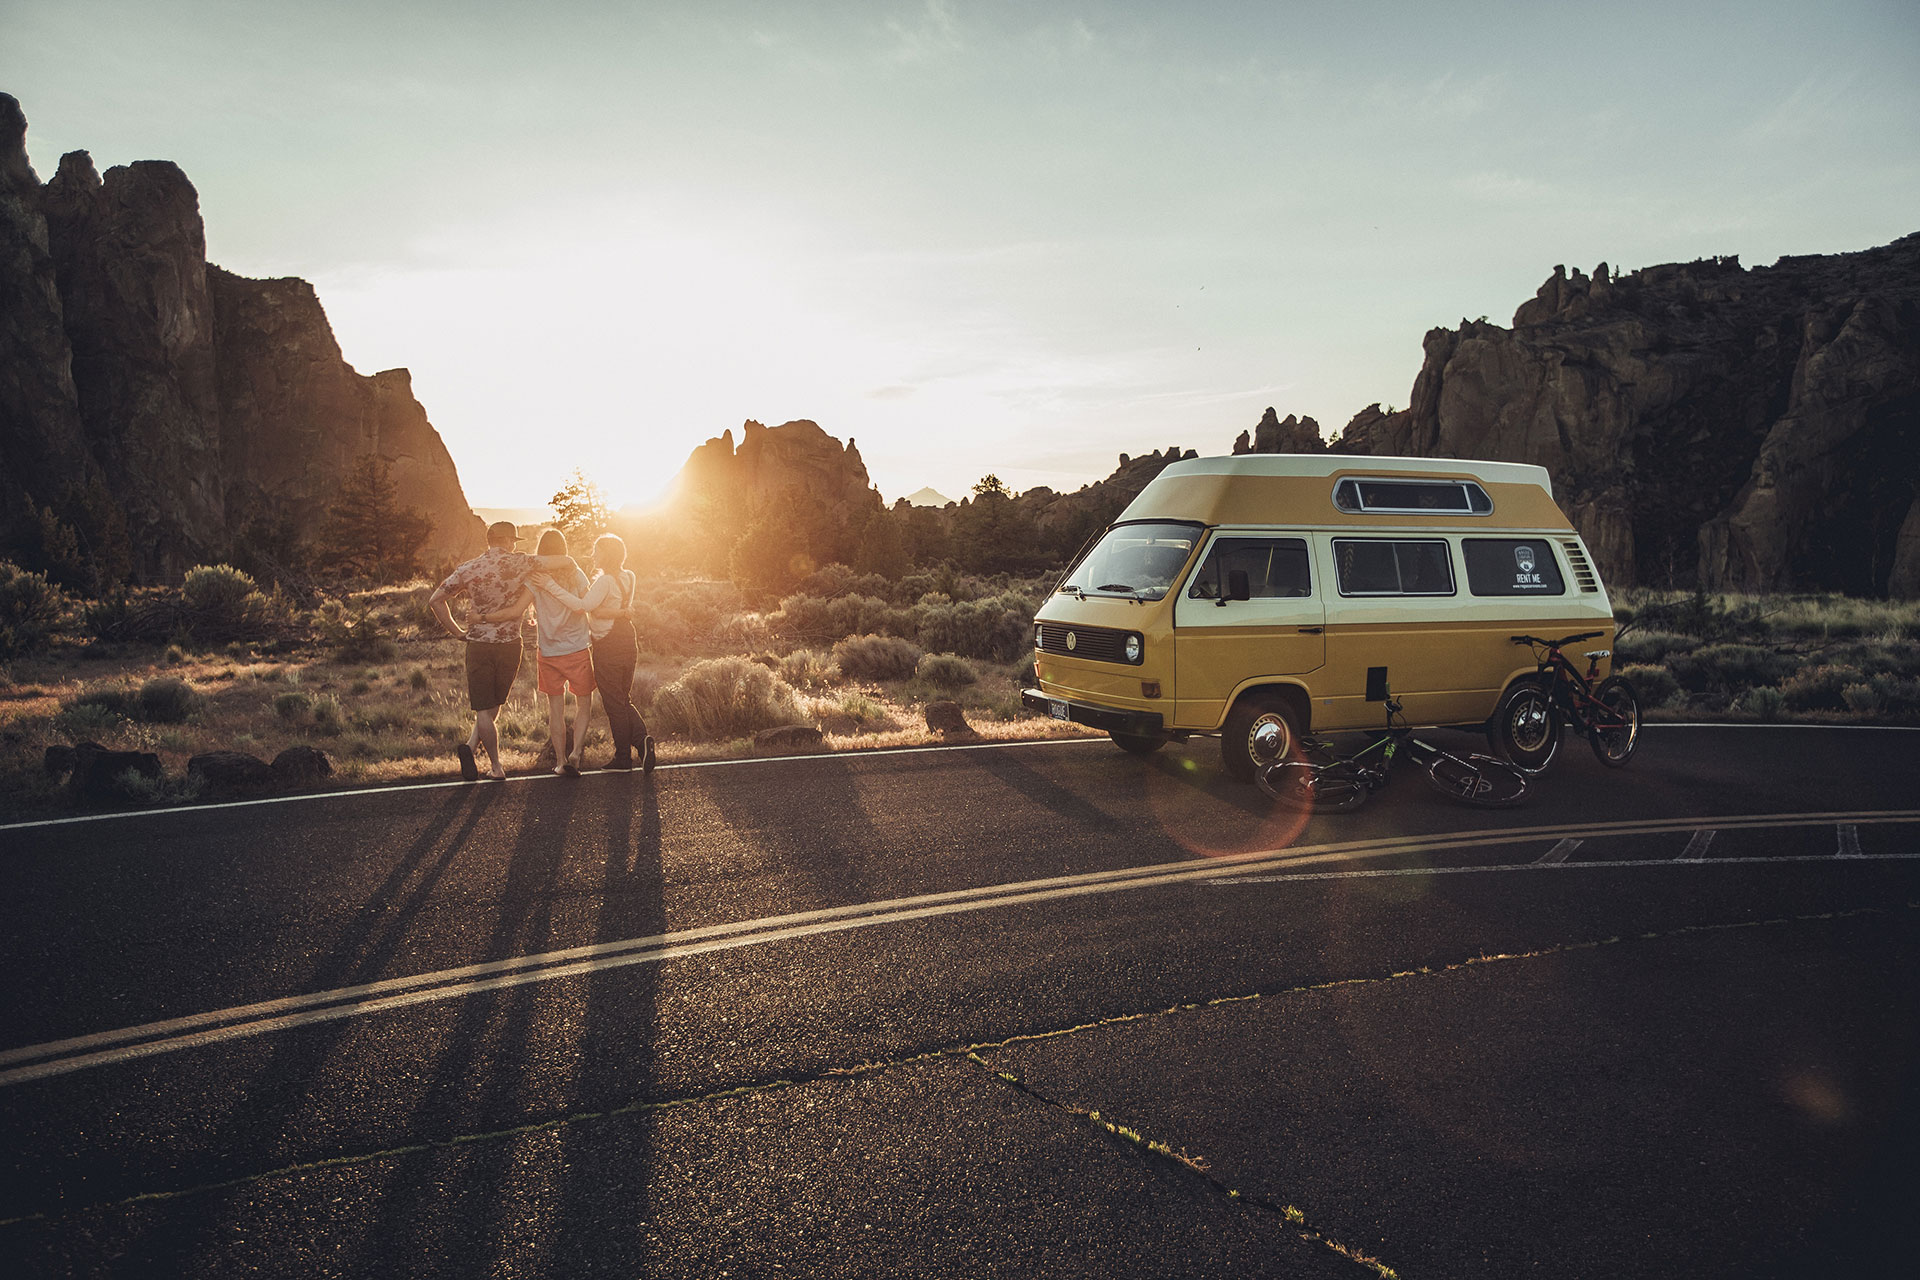 vanlife fotograf roadtrip road oregon vw bus deutschland camping sonnenuntergang